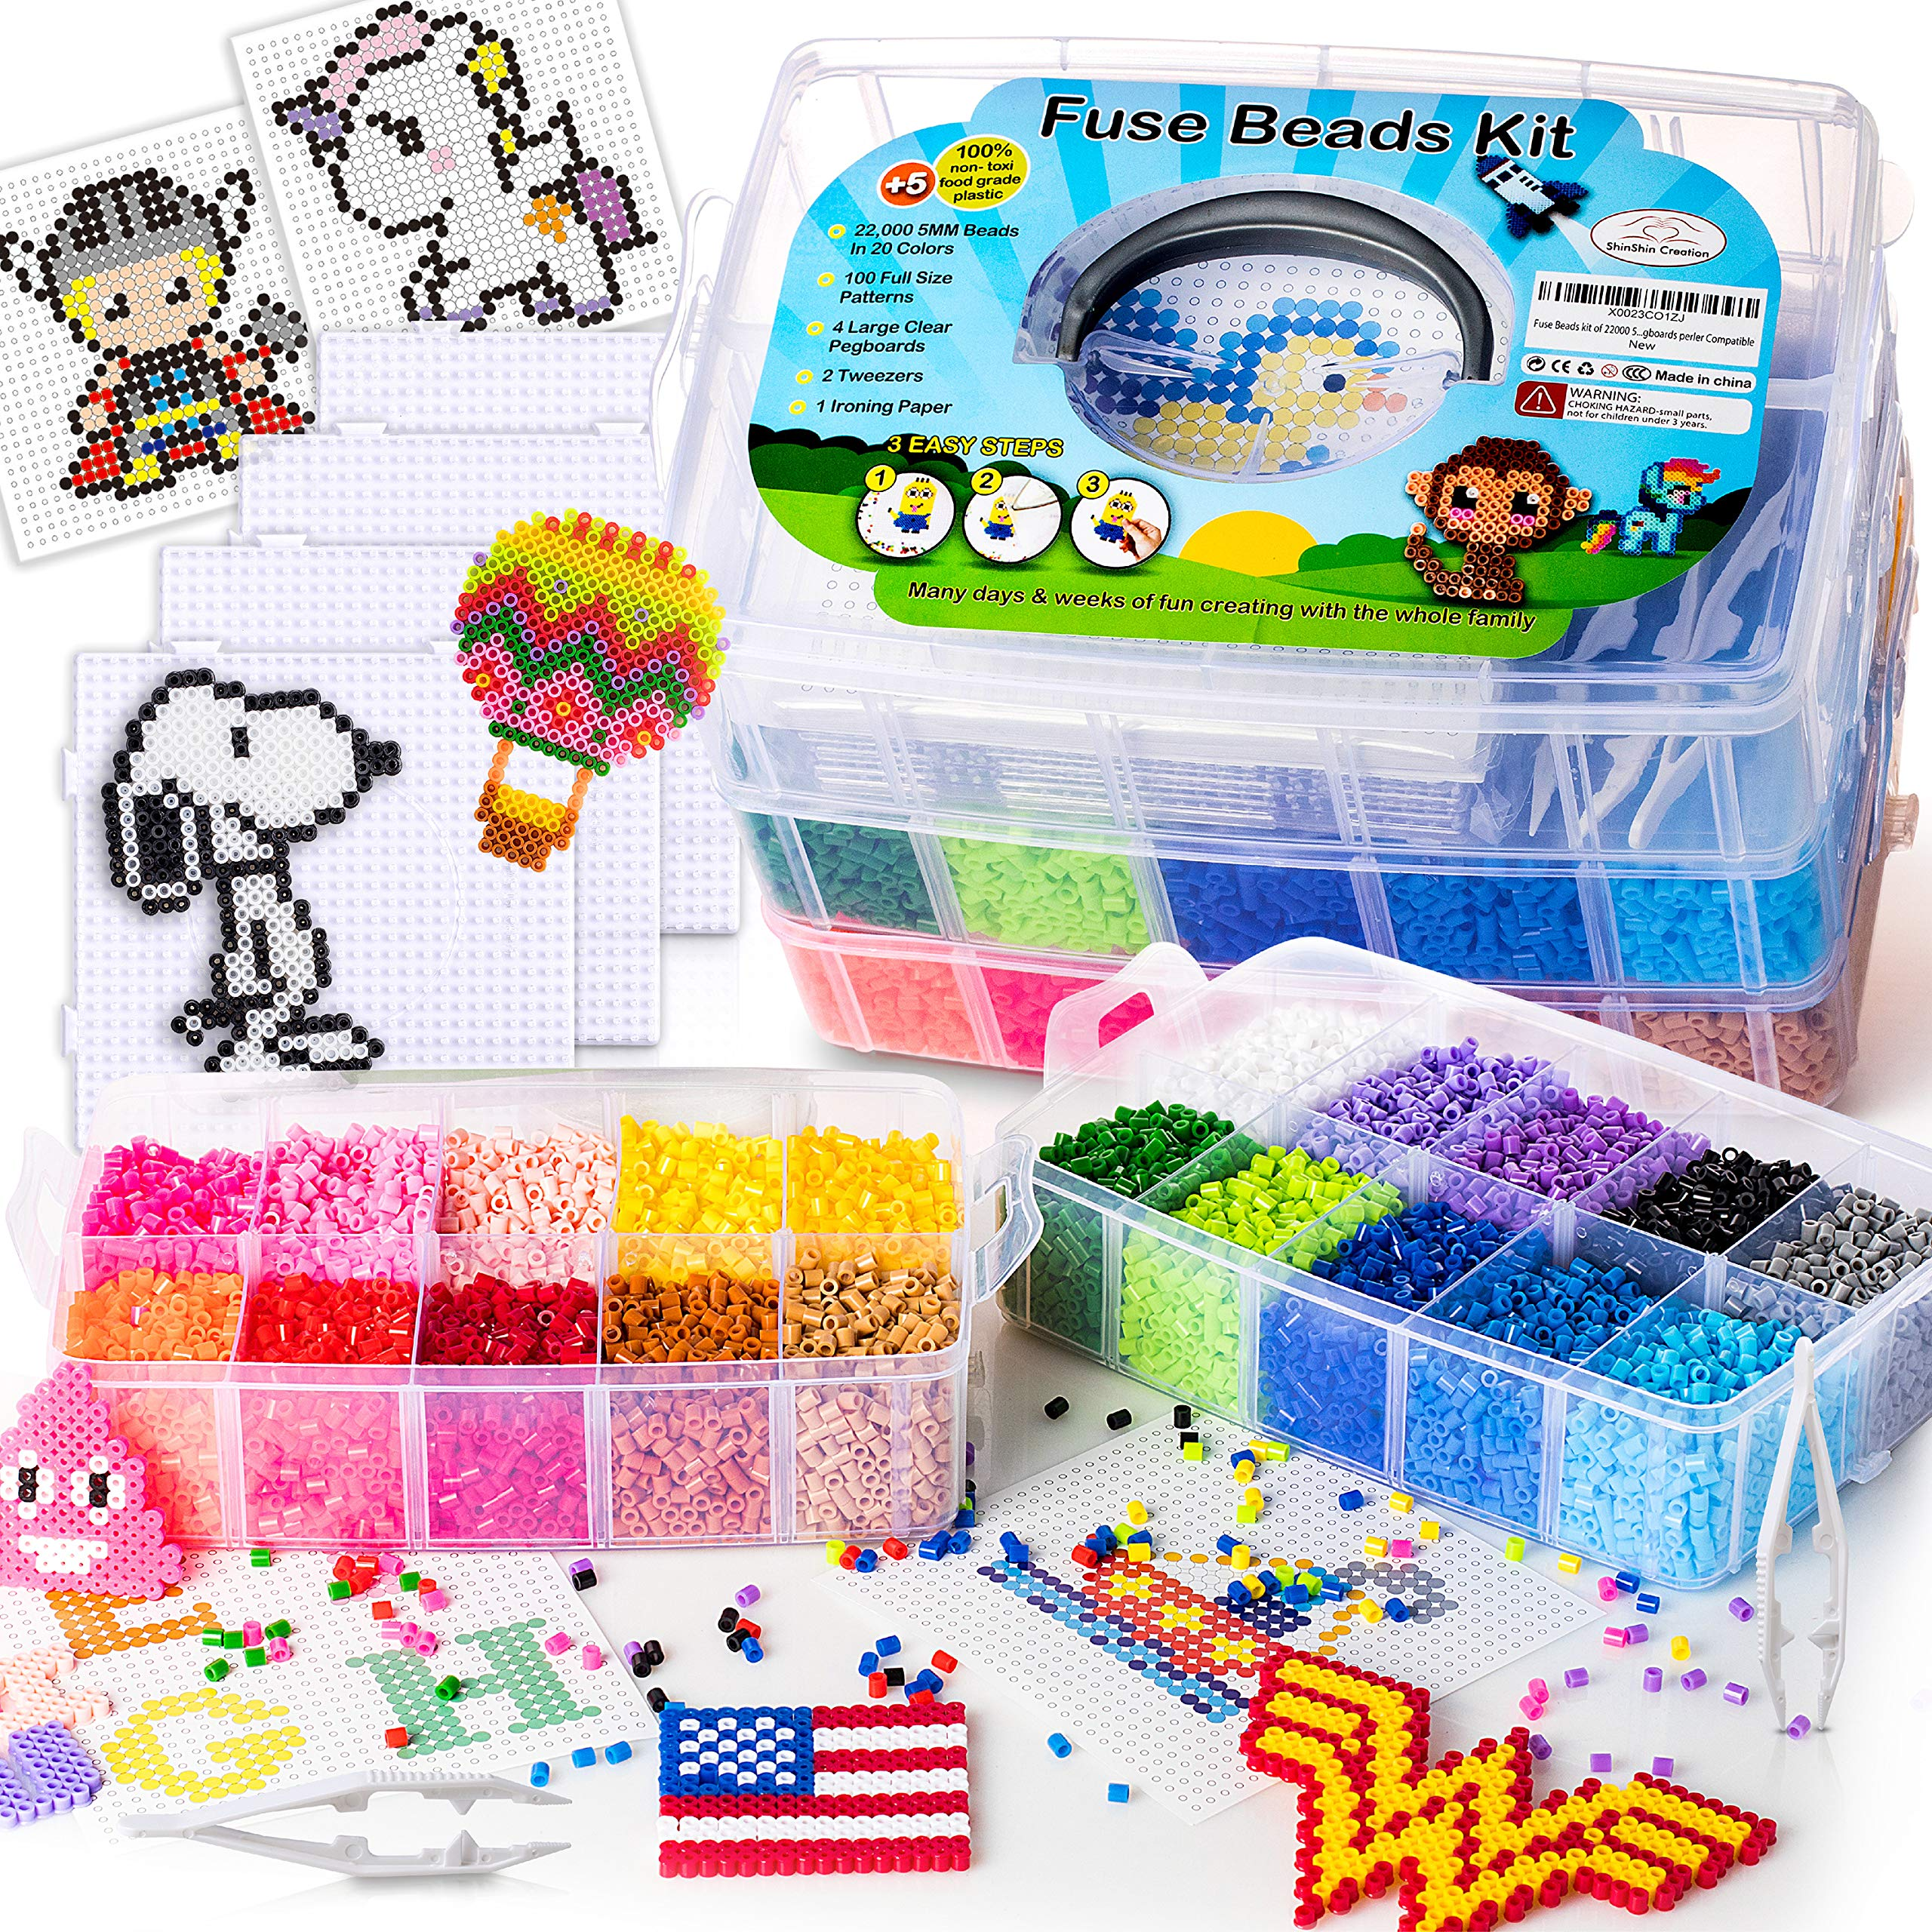 22,000 Fuse Beads 5mm with 100 Full Size Patterns, 20 Pre-Sorted Colors, 4 Big Pegboards, Perler Hama Melty Iron Beads Compatible